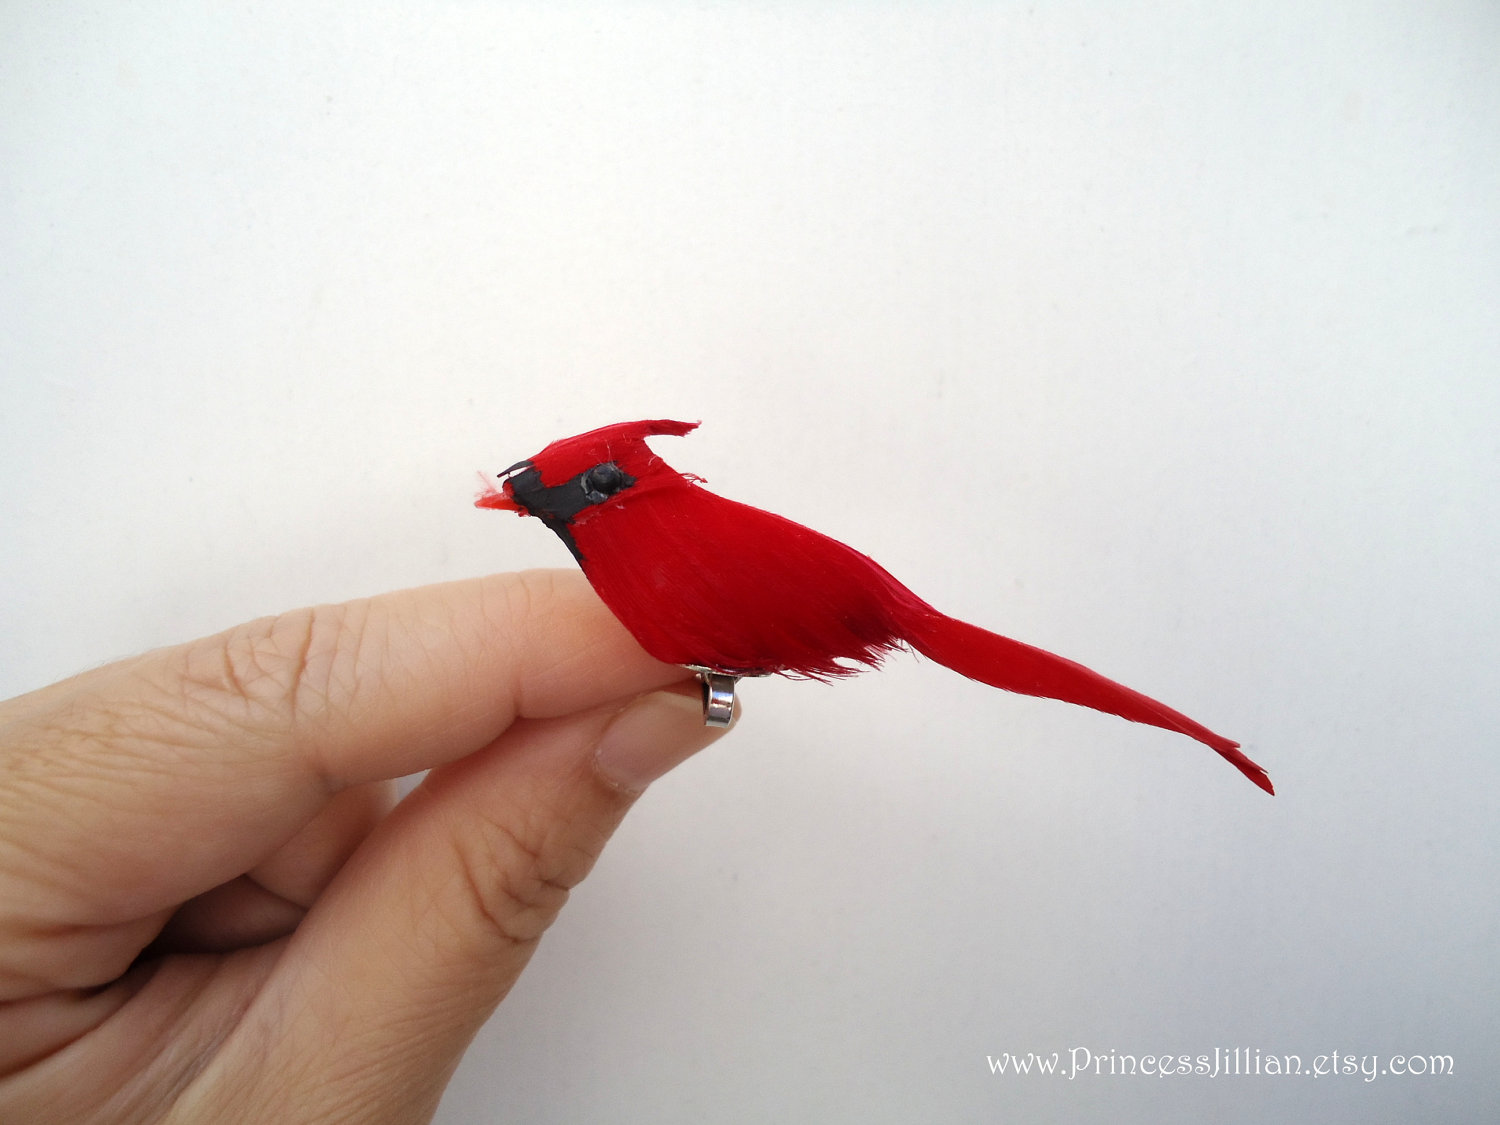 Quotes About Love And Birds Quotesgram: Cardinal Bird Quotes And Sayings. QuotesGram